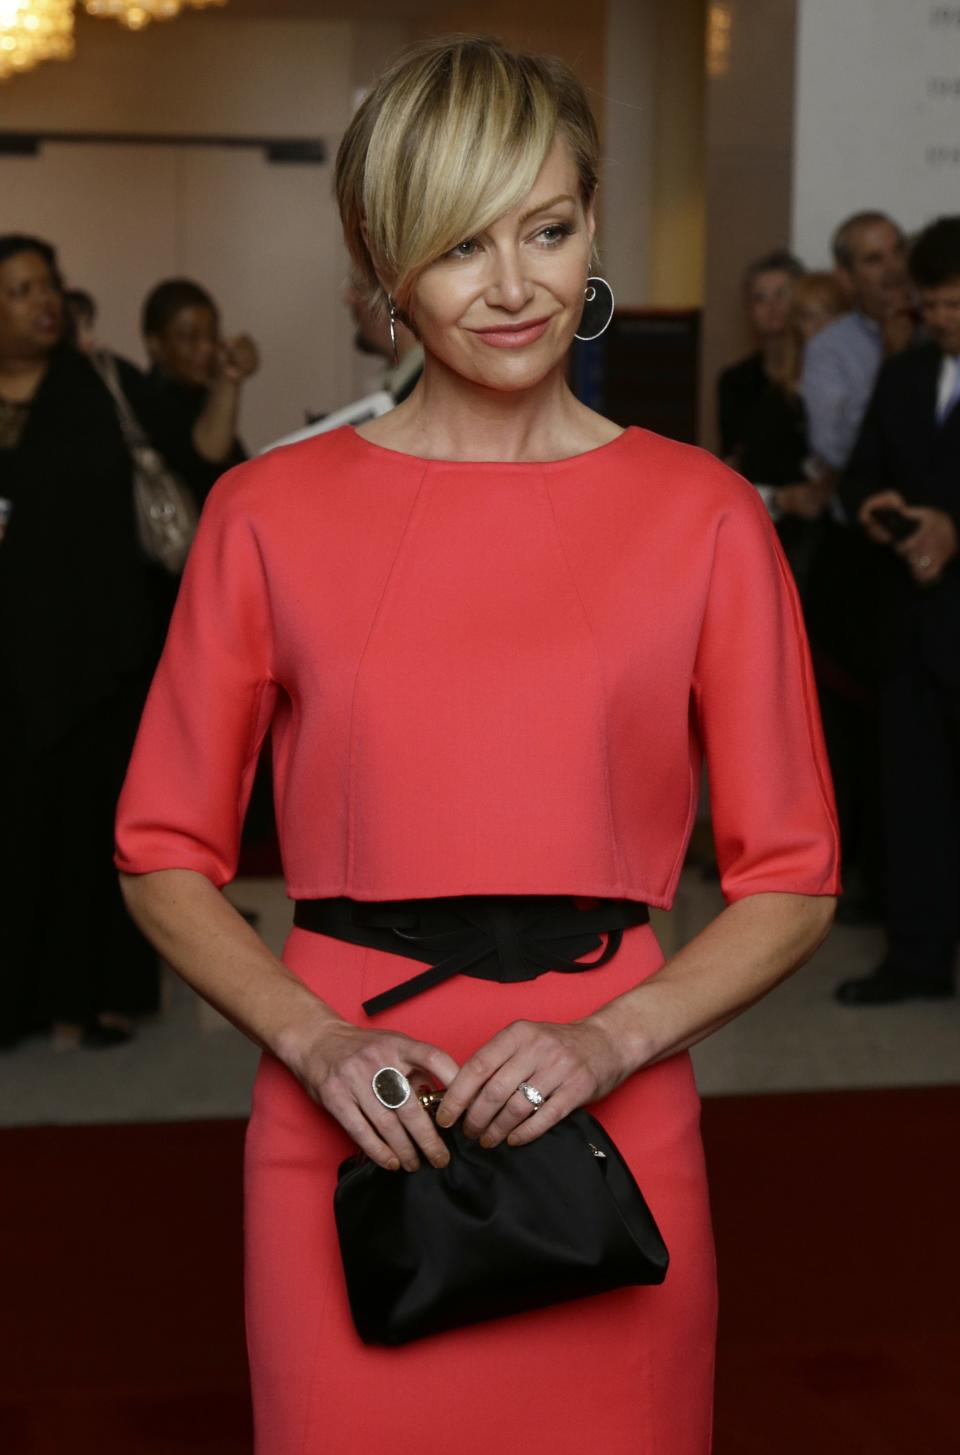 Actress Portia de Rossi, wife of Ellen DeGeneres, poses for photographers on the red carpet before entertainer Ellen DeGeneres receives the 15th annual Mark Twain Prize for American Humor at the Kennedy Center, Monday, Oct. 22, 2012, in Washington. (AP Photo/Alex Brandon)